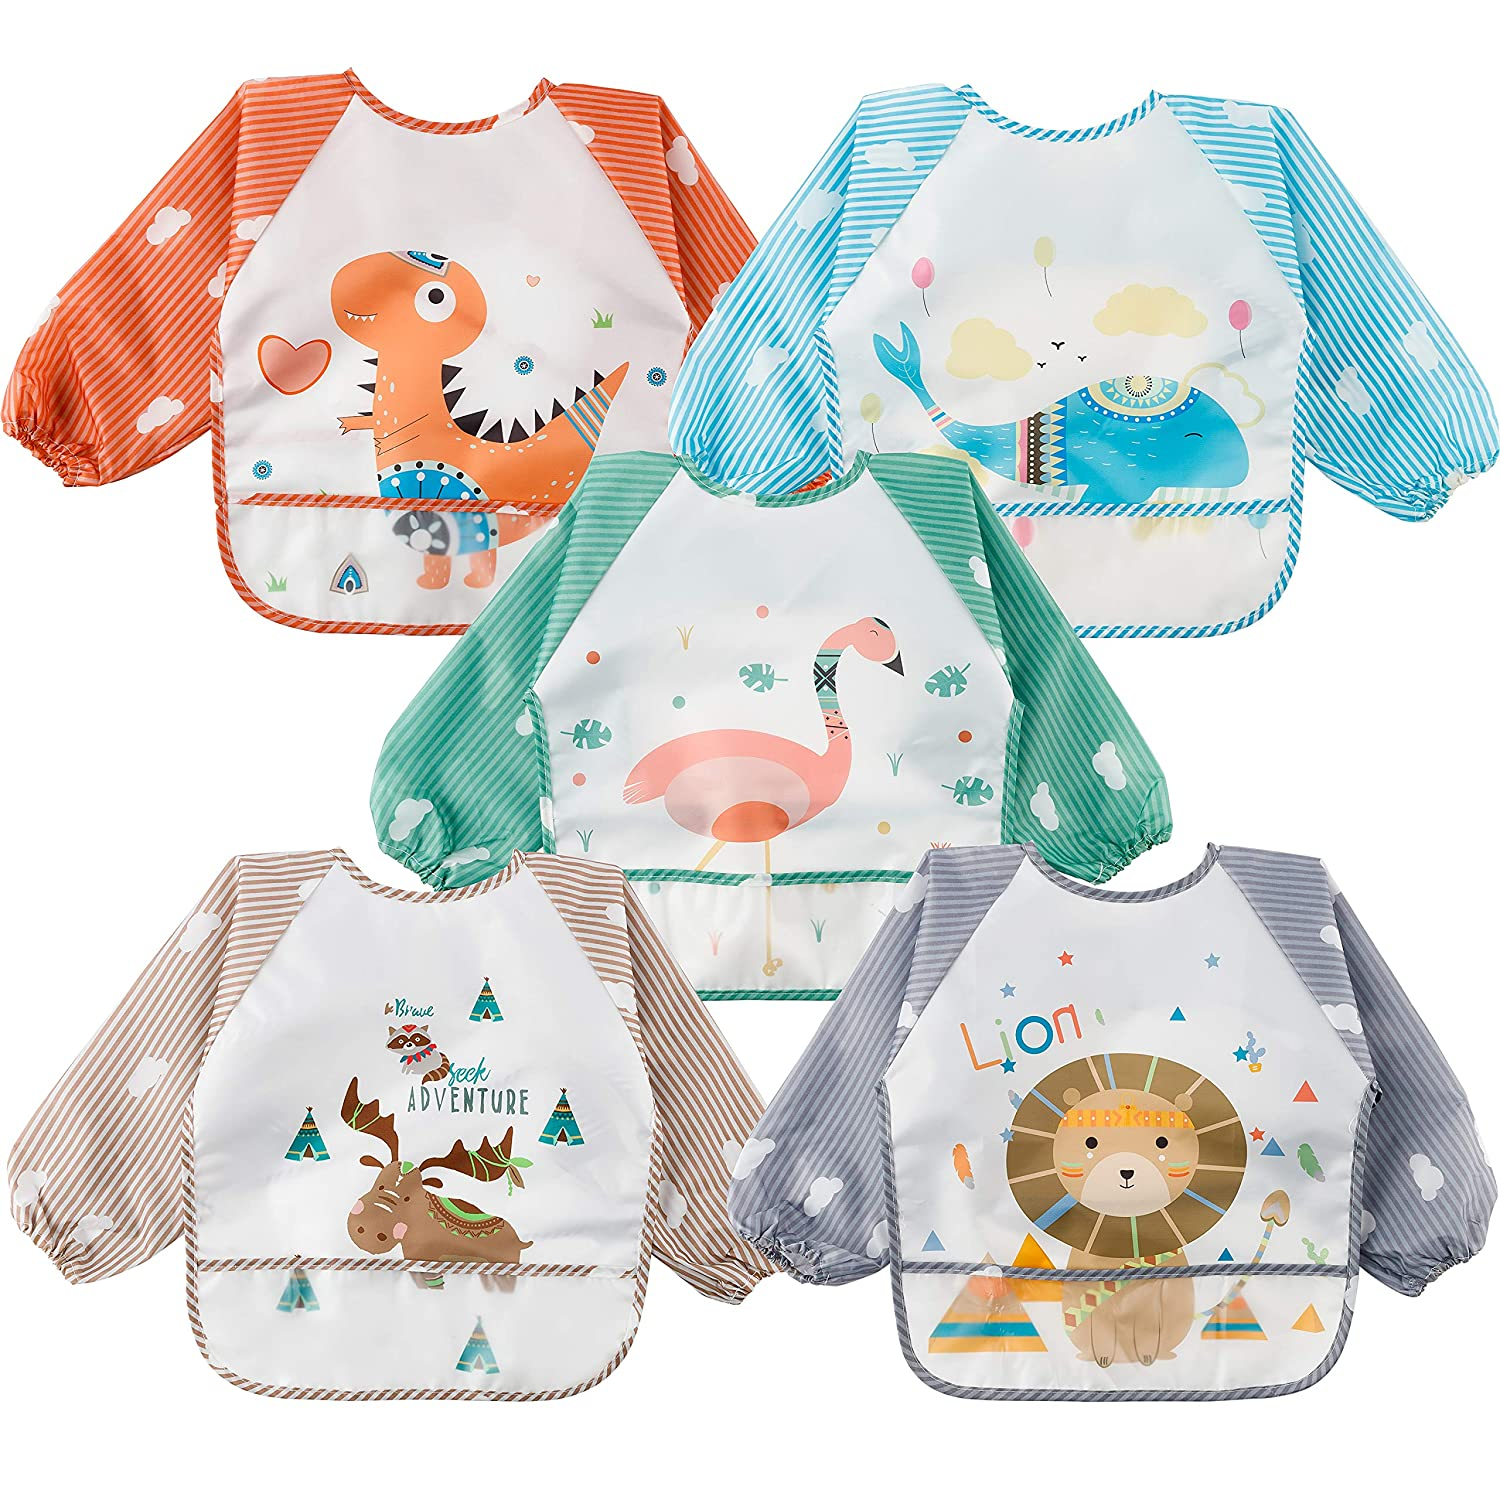 5Pcs Long Sleeved Bib for Babies Toddlers Waterproof Sleeved Bib with Crumb Catcher Pocket Colorful Food Bib Infants Feeding Bibs with Animals Pattern Gift for Baby Shower 6-36 Months